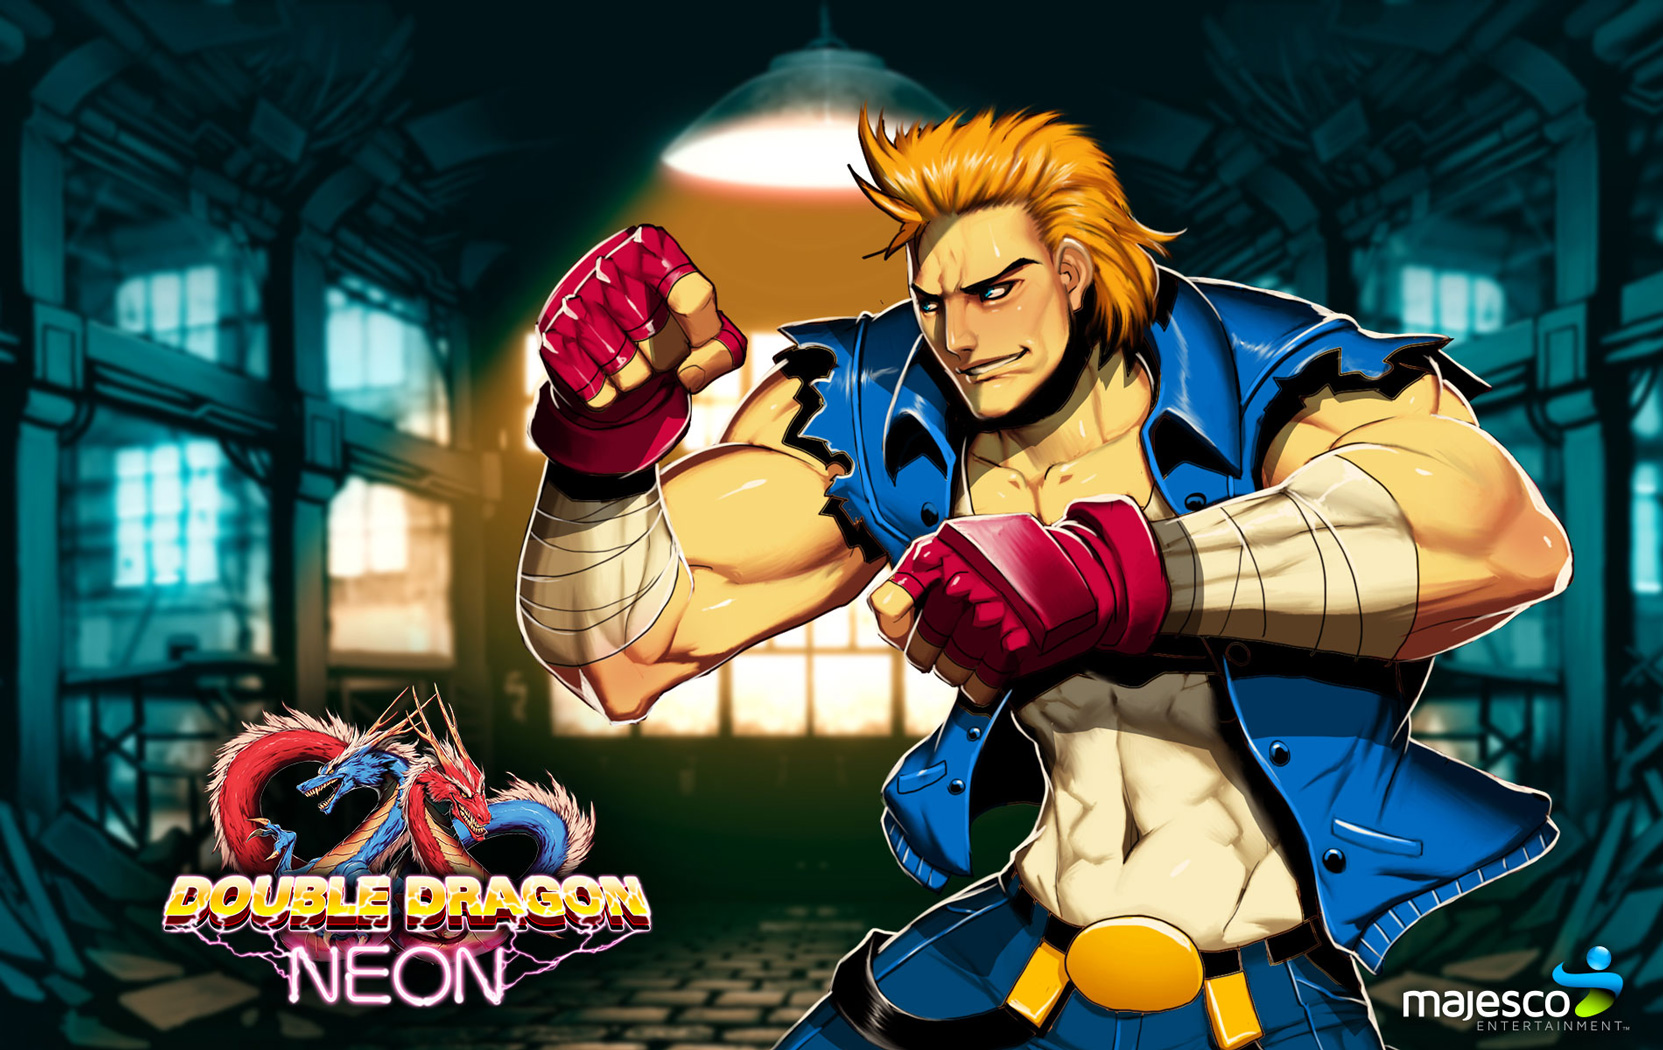 Free Double Dragon Neon Wallpaper in 1680x1050